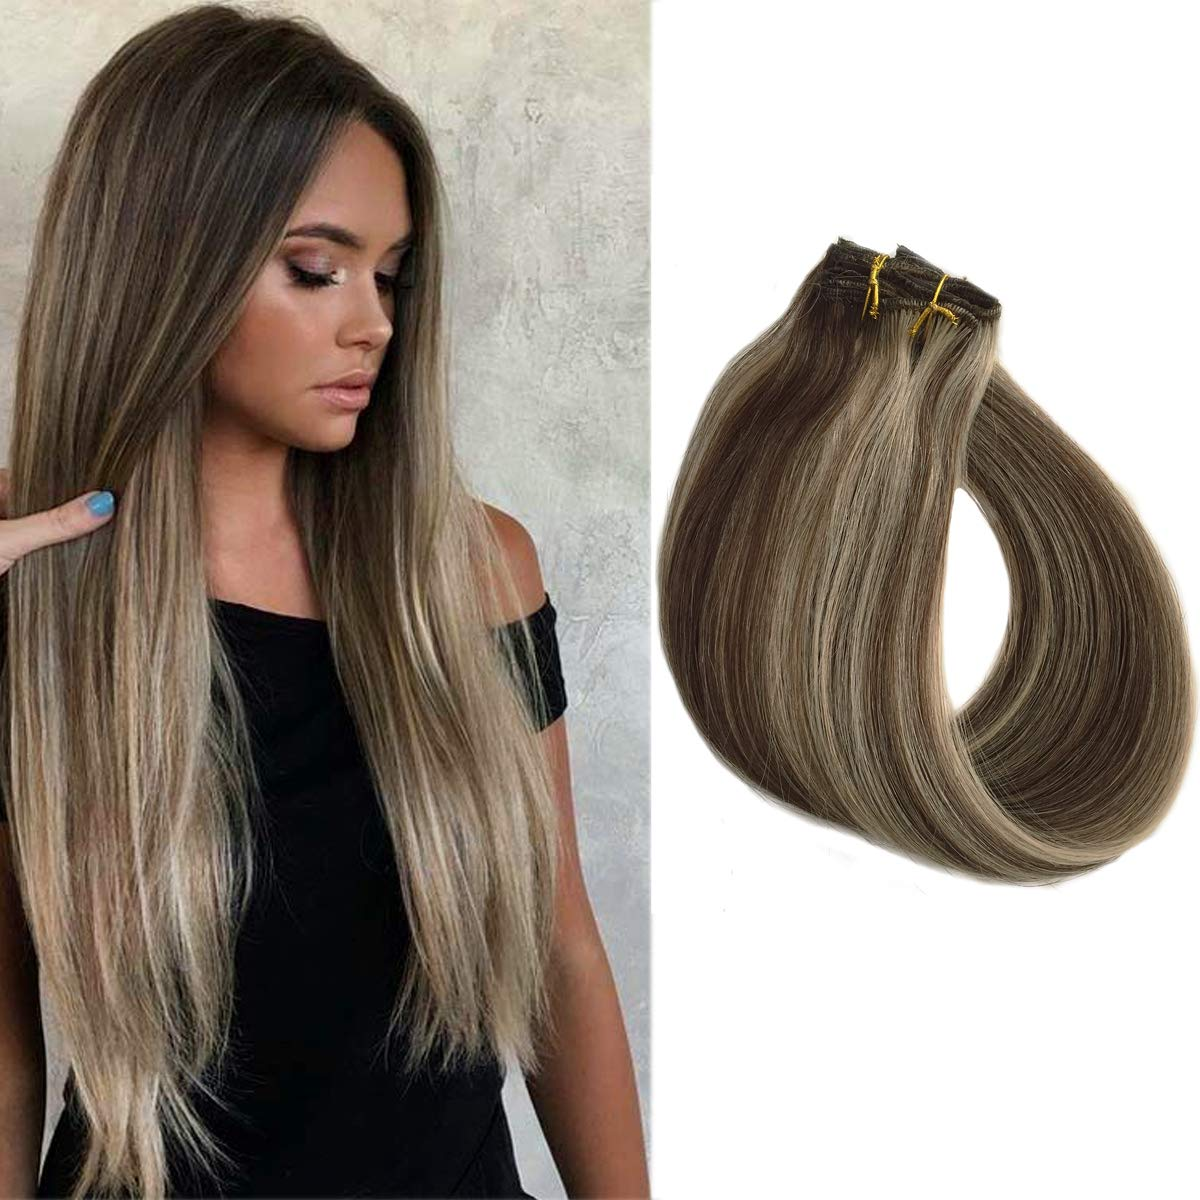 amazoncom human hair extensions clip in brown to blonde